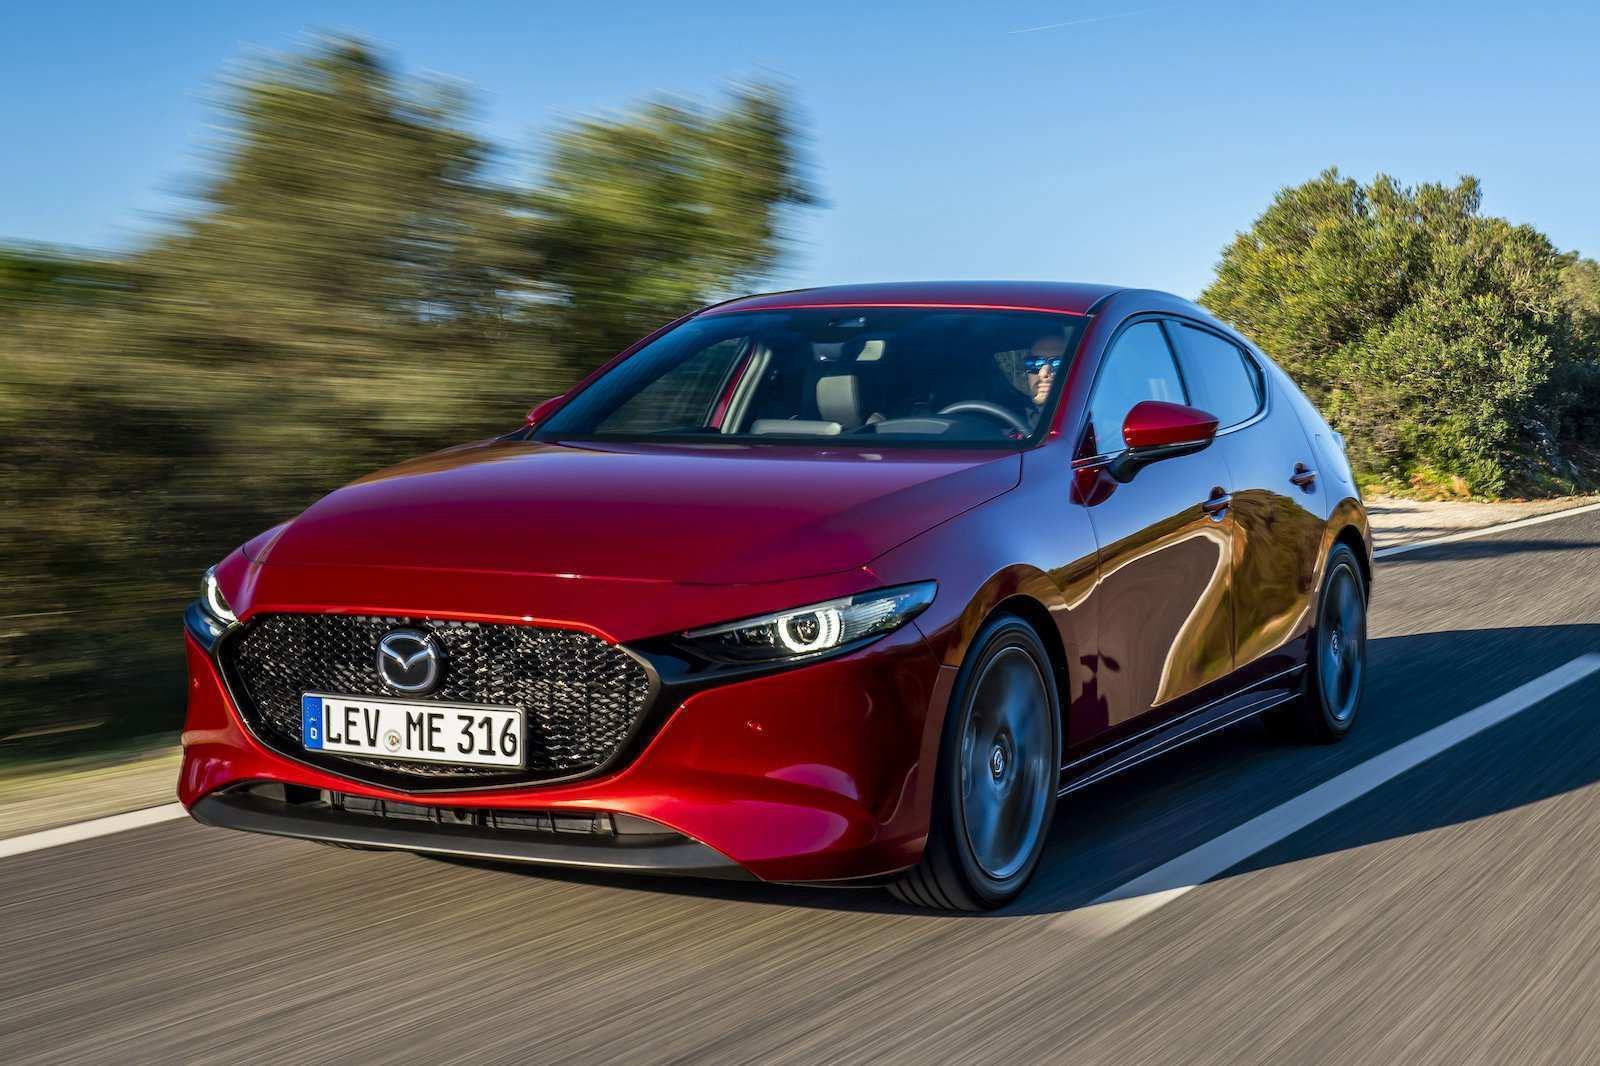 64 Great Mazda 3 2019 Specs Ratings with Mazda 3 2019 Specs